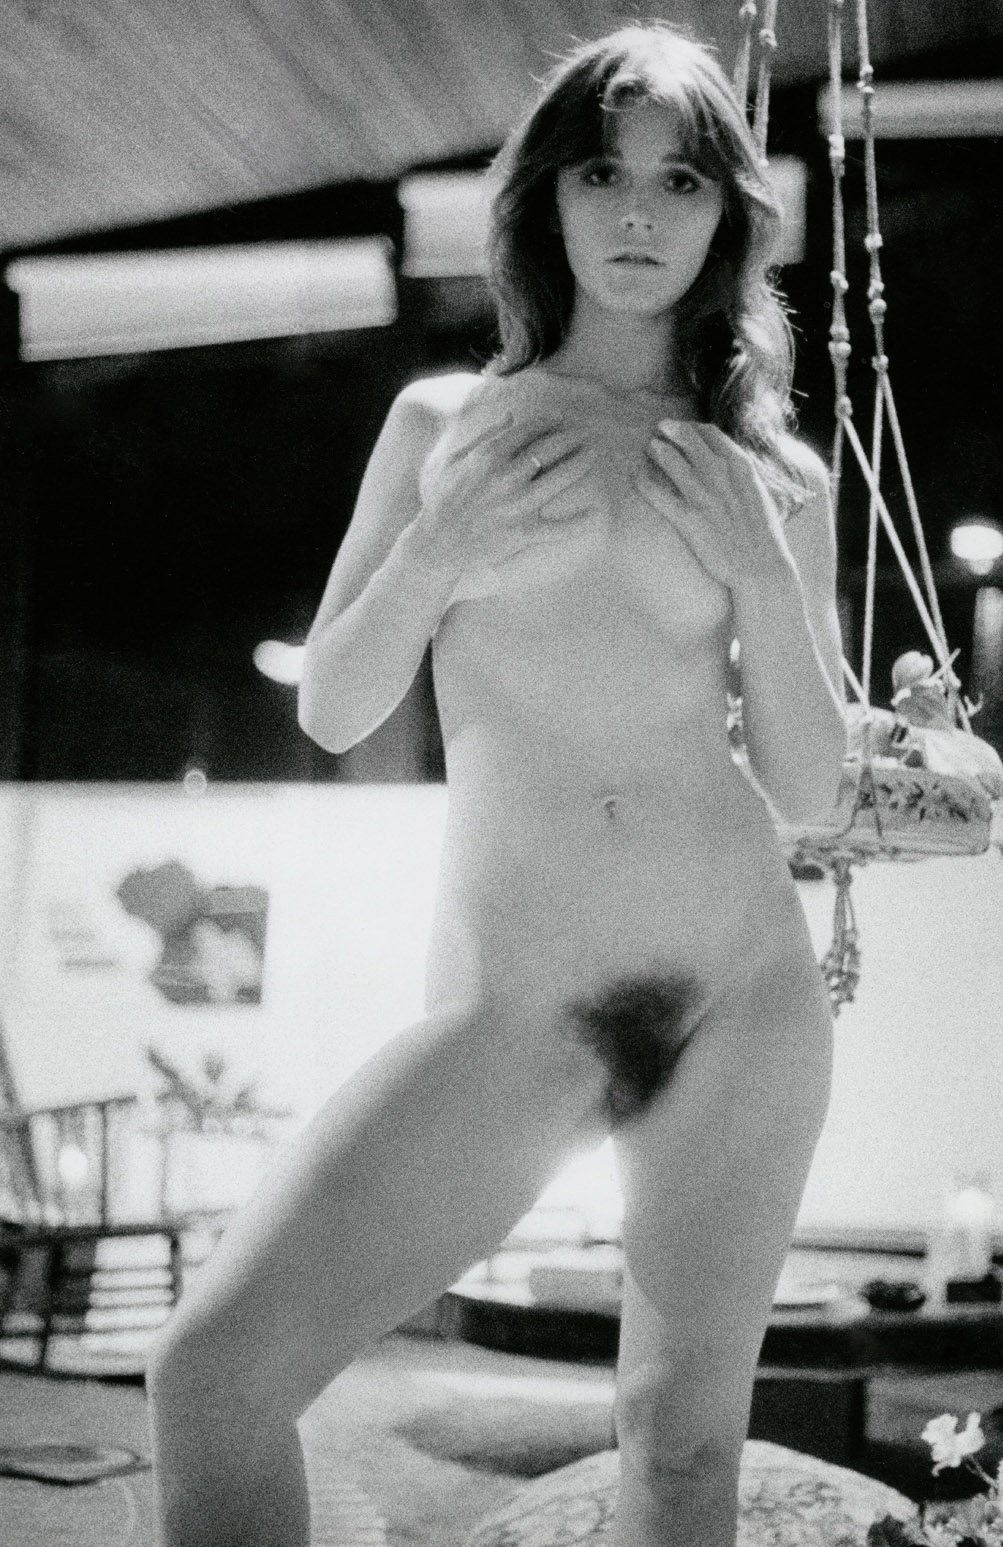 Margot Kidder Nude 11.jpg